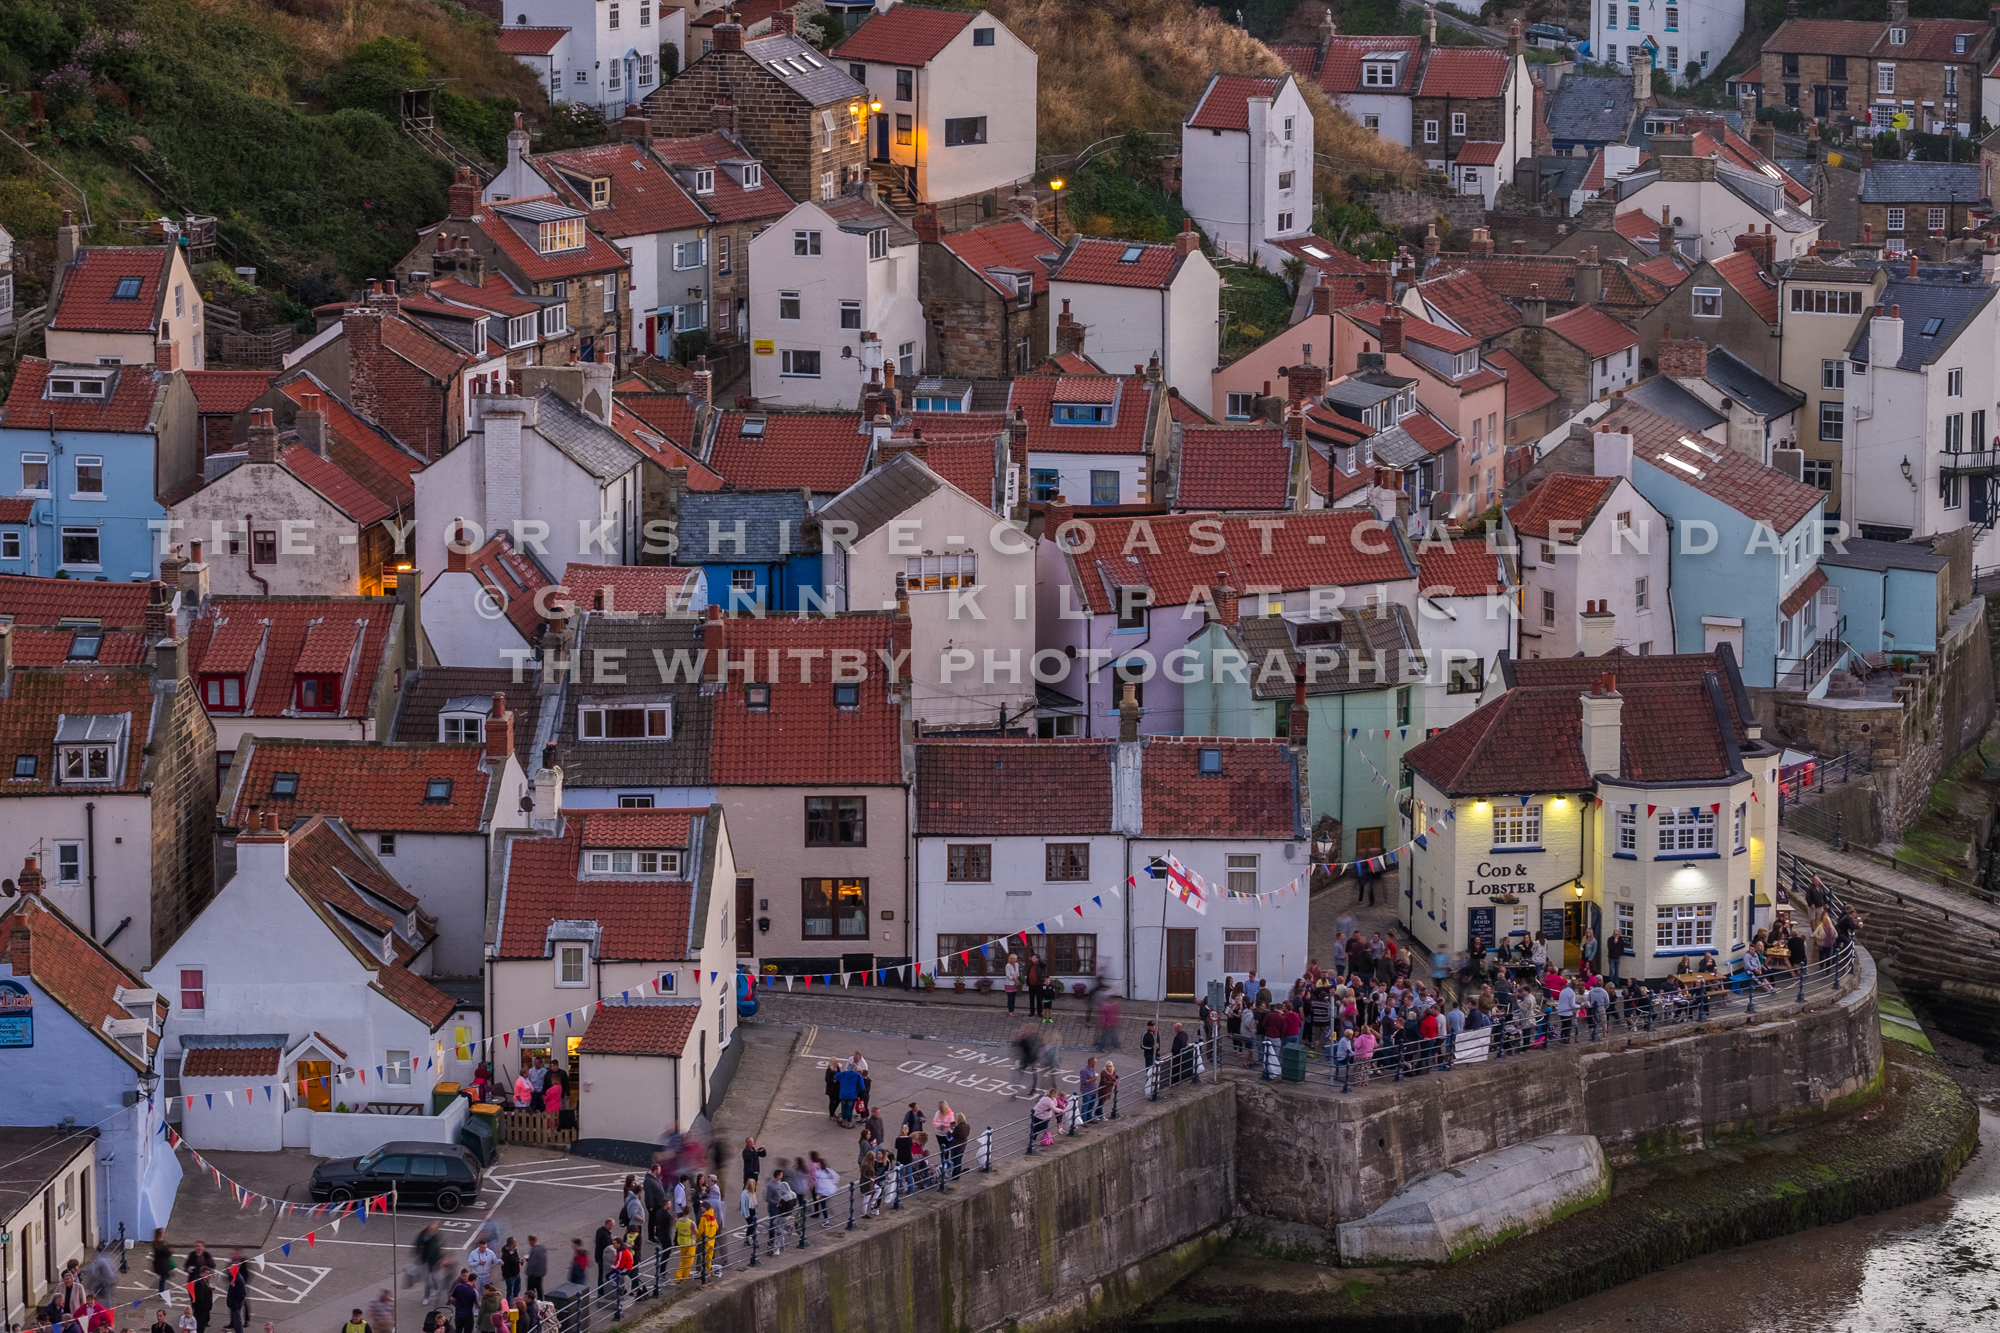 The Beautiful Village Of Staithes - The Yorkshire Coast Calendar 2018 By Glenn Kilpatrick.